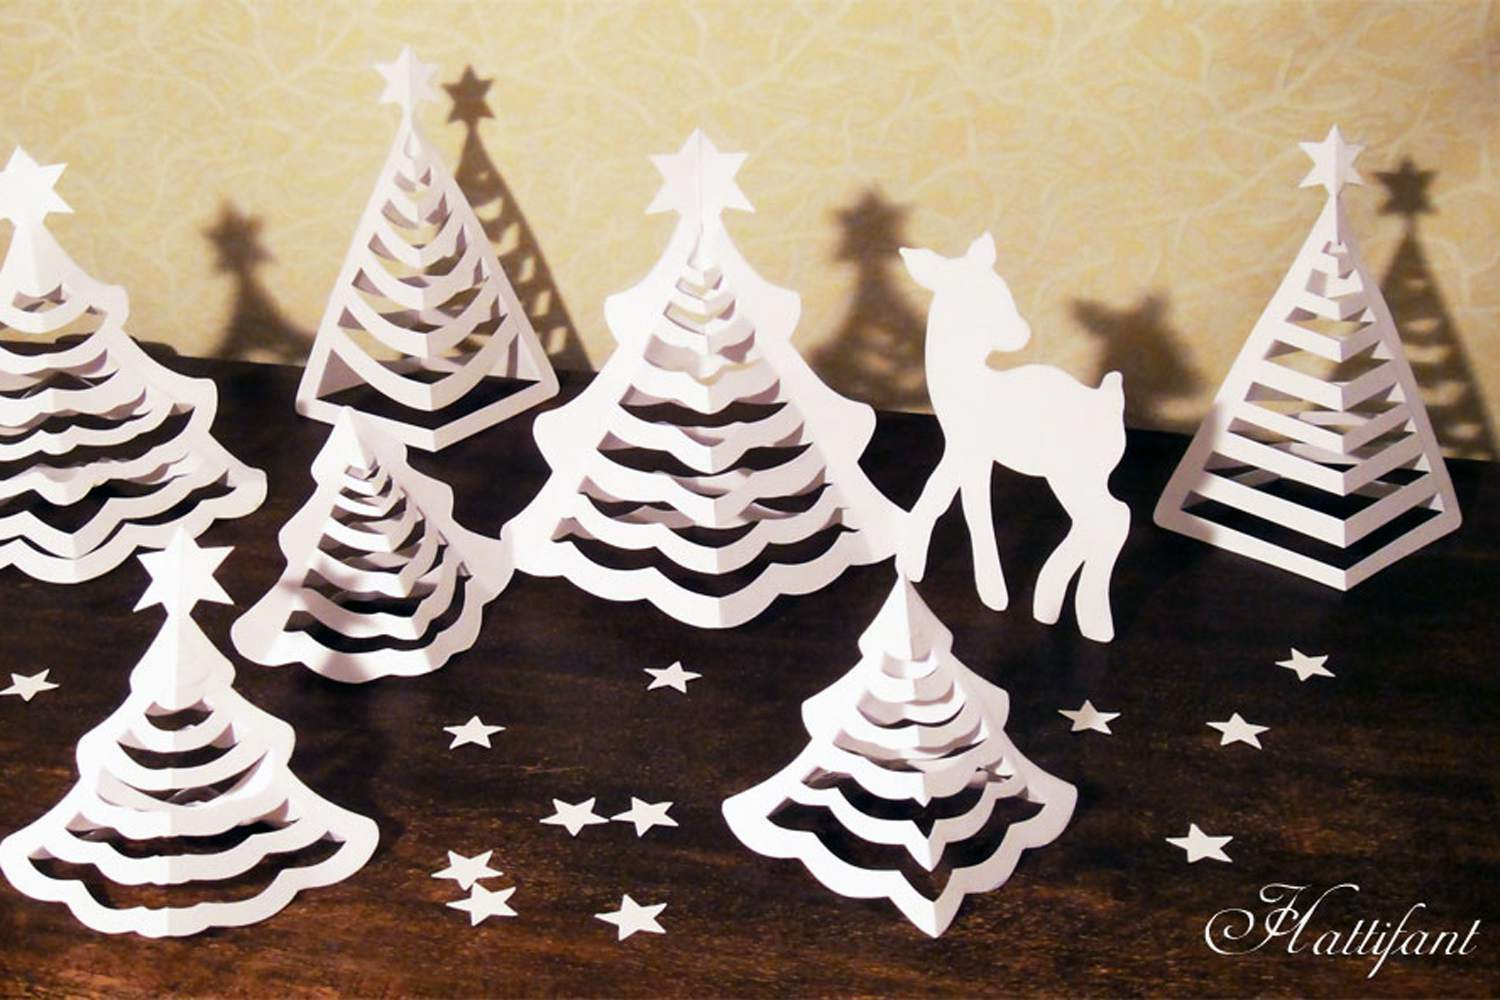 bcd1b53a4380d 11 Pretty Paper Christmas Ornaments and Crafts